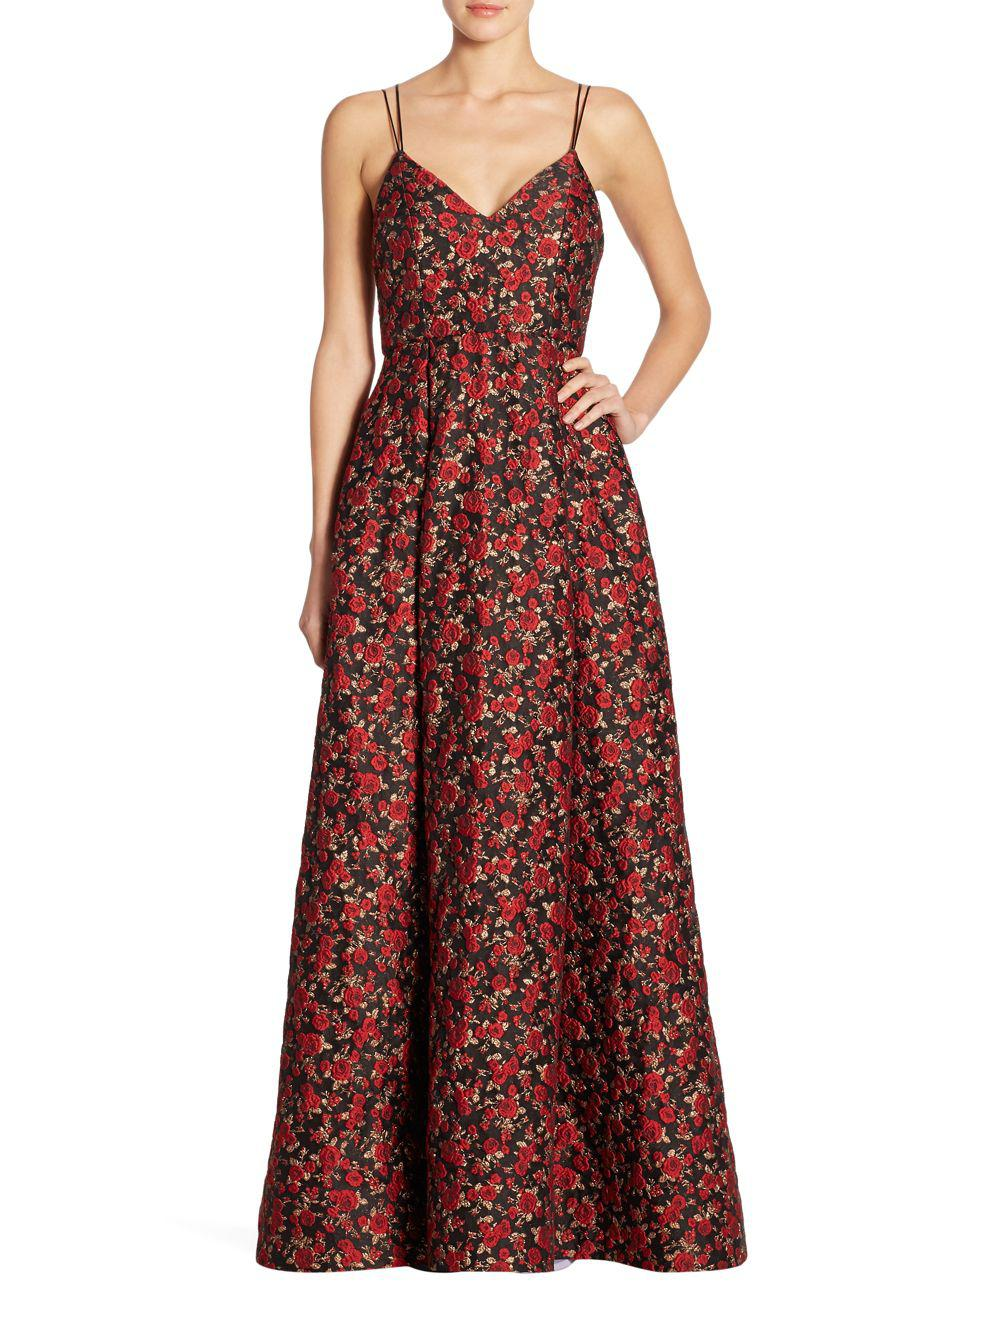 Lyst - Alice + Olivia Marilla Floral Gown in Red - Save ...